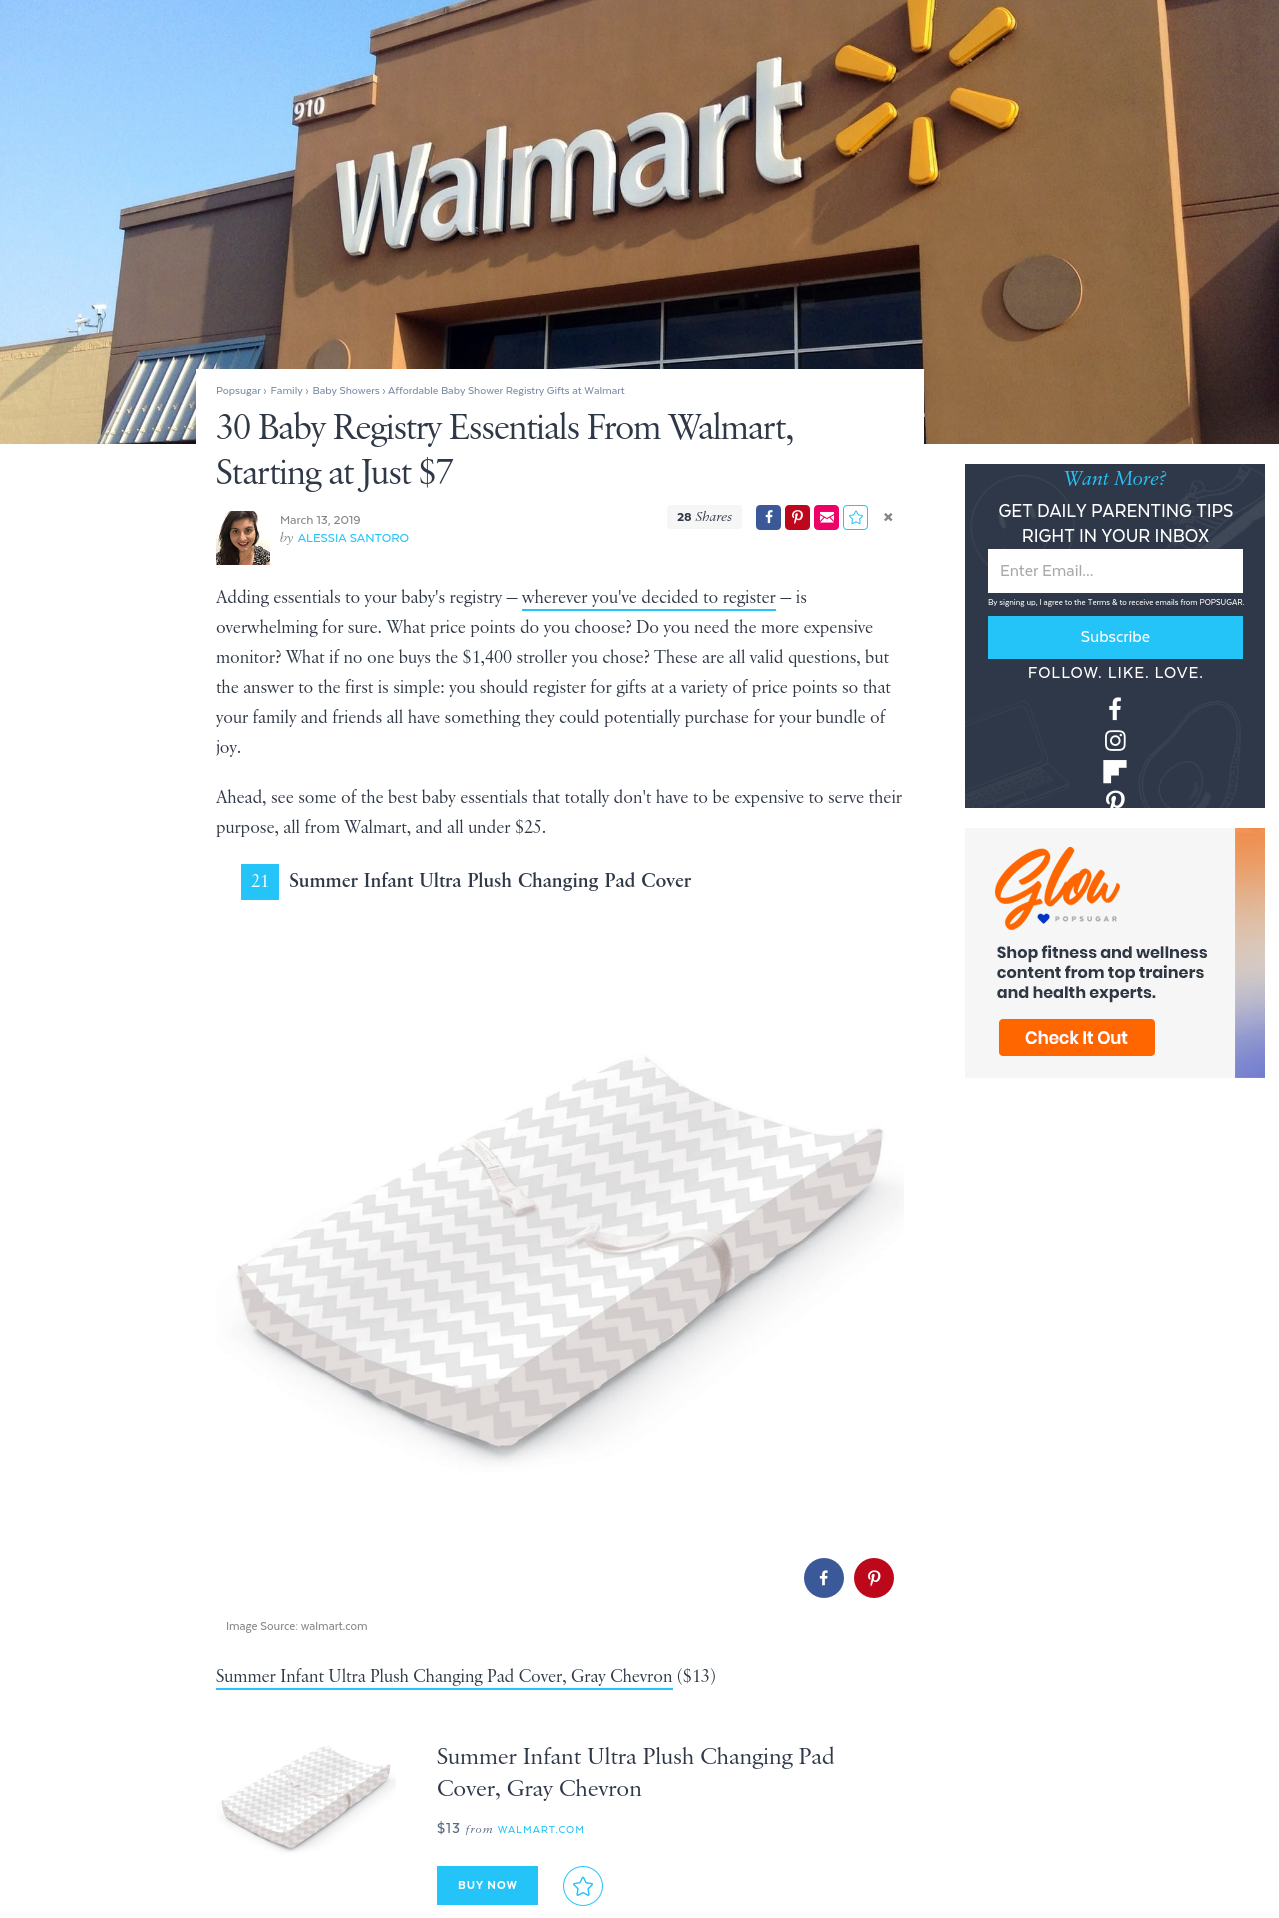 2019.03.13_(PopSugar) Family_Summer Infant Ultra Plush Changing Pad Cover_cropped 2x3.png